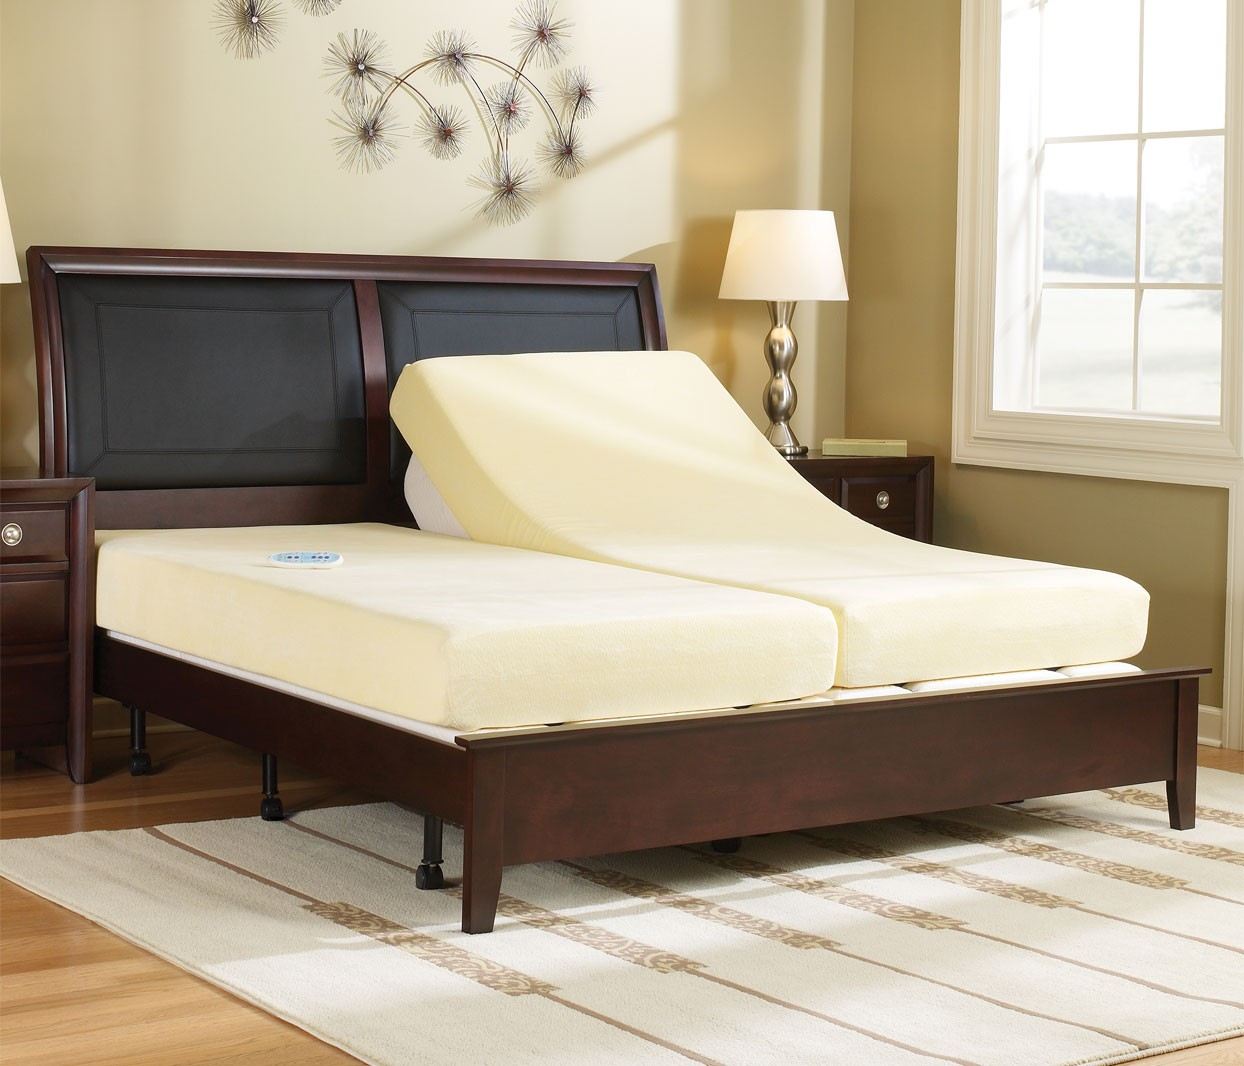 Trends that can help mattress retailers increase sales and profits sell more beds Mattress king